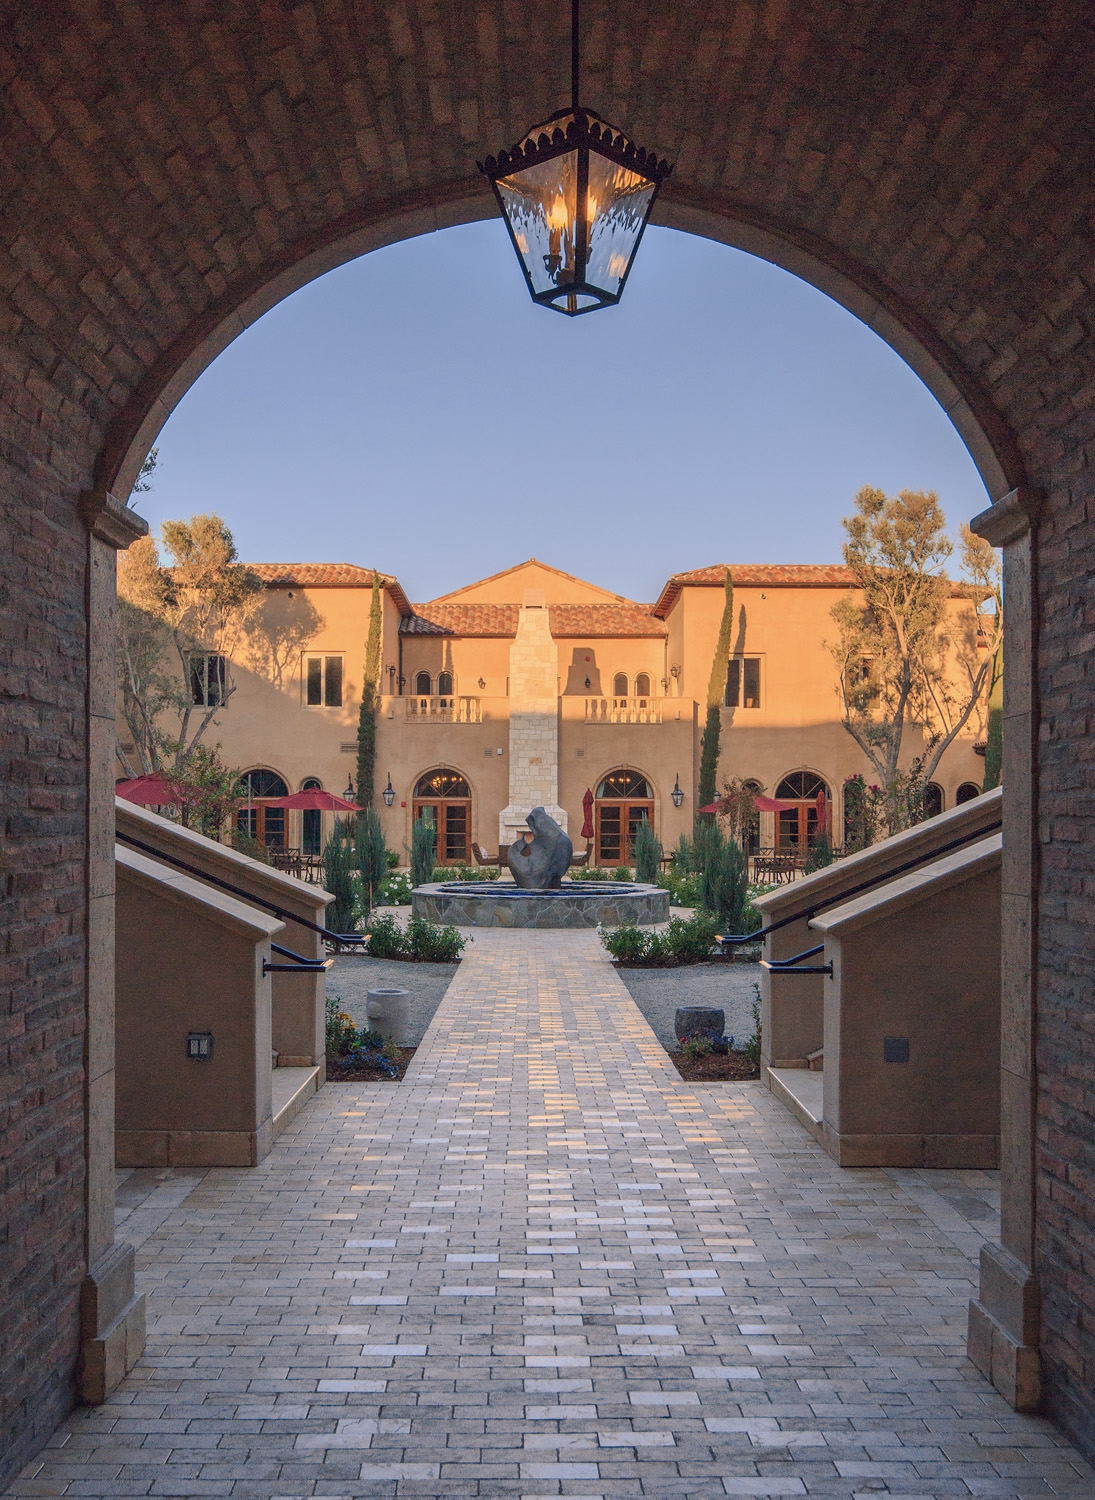 Looking through an archway into the resort's courtyard